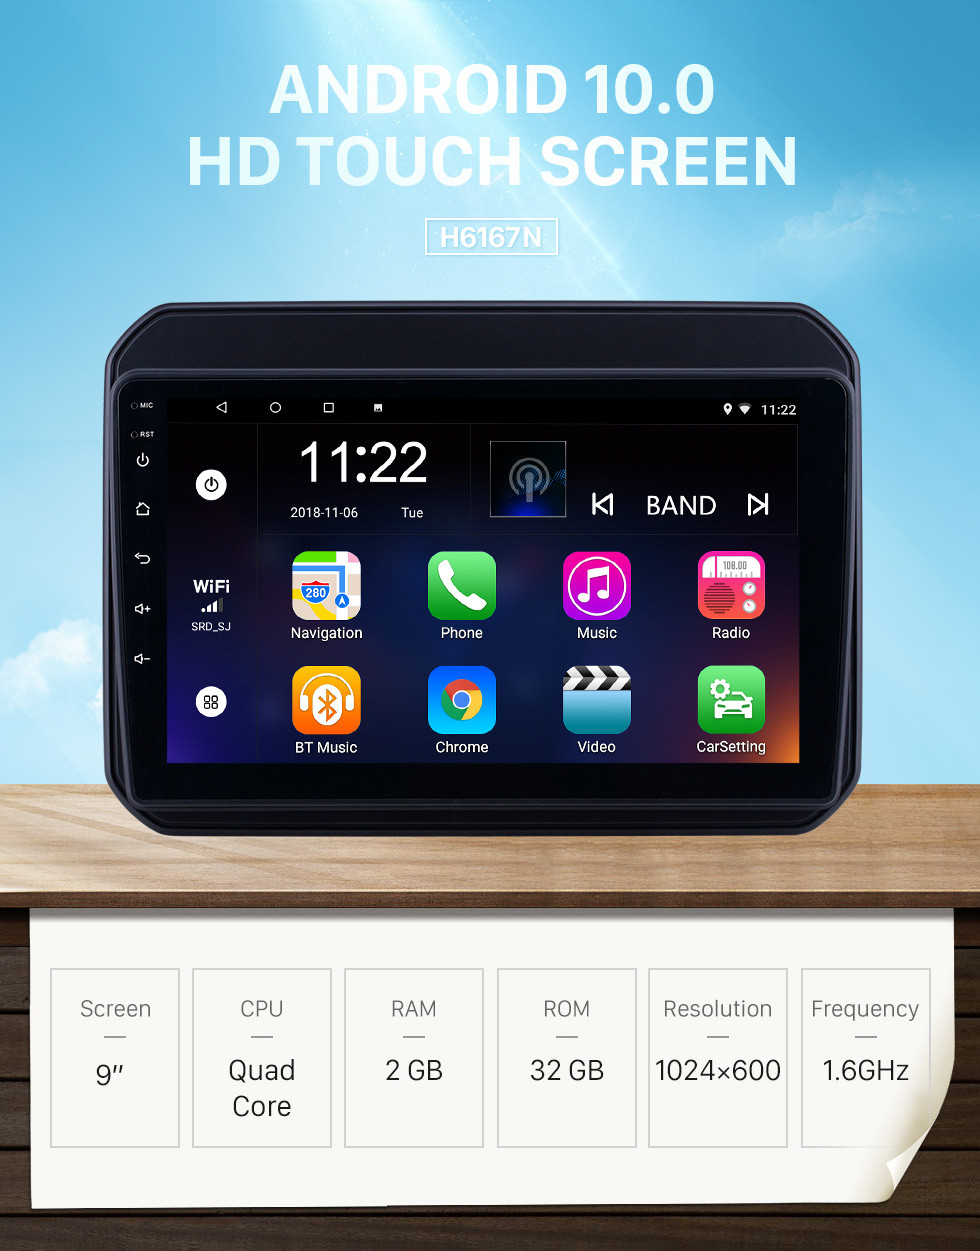 Seicane HD Touchscreen 9 inch Android 10.0 GPS Navigation Radio for 2016-2018 Suzuki IGNIS with Bluetooth USB WIFI AUX support Carplay 3G Backup camera TPMS